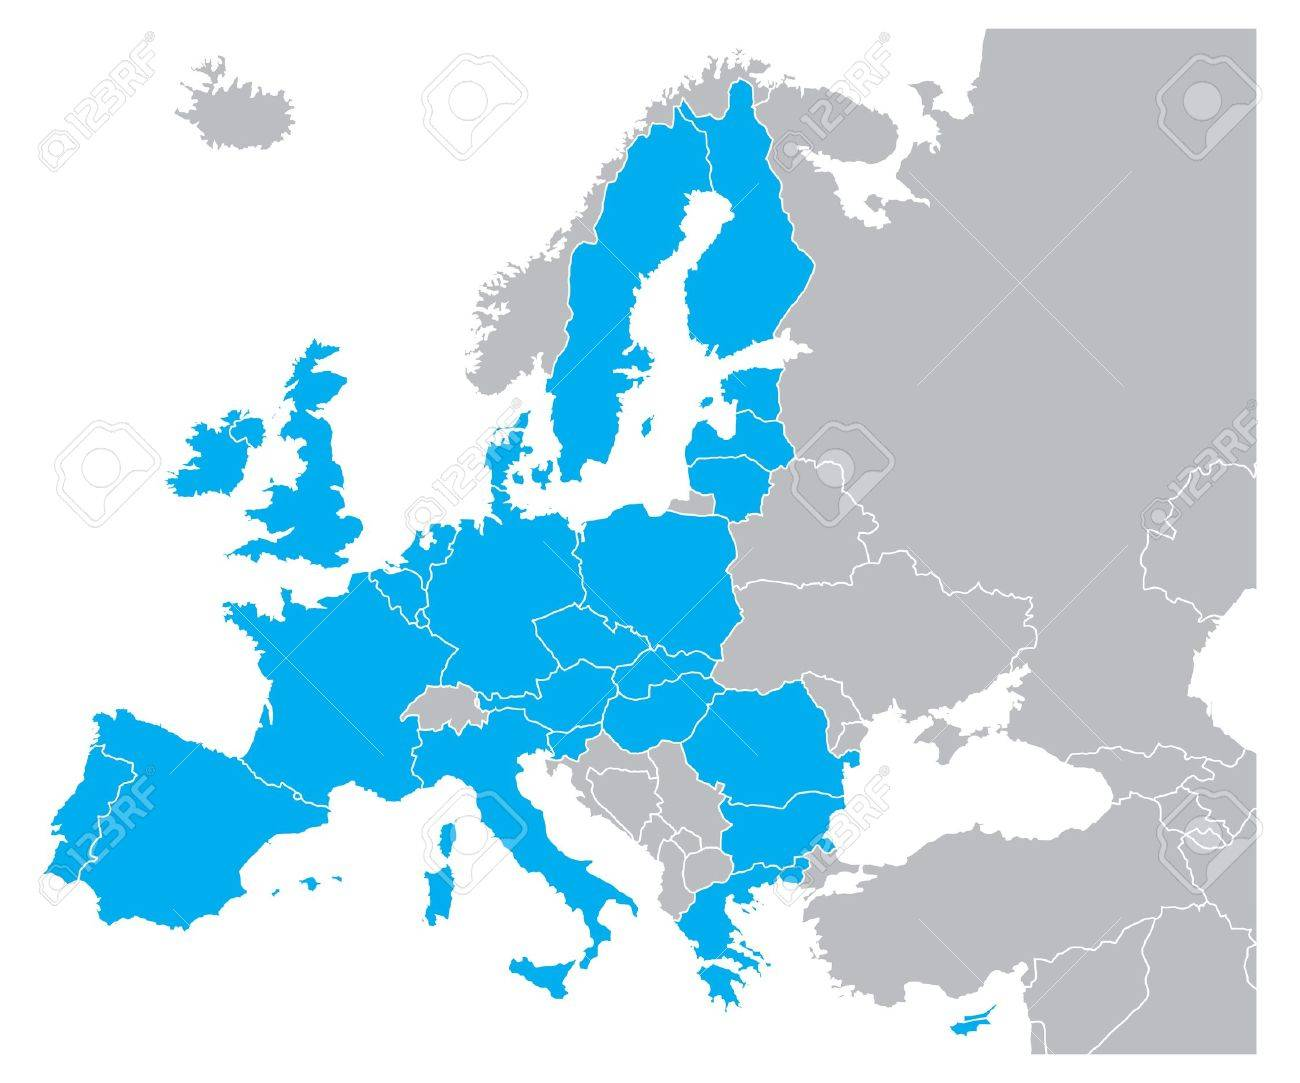 Blue Color Map Of Europe Royalty Free Cliparts Vectors And Stock Illustration Image 15513367